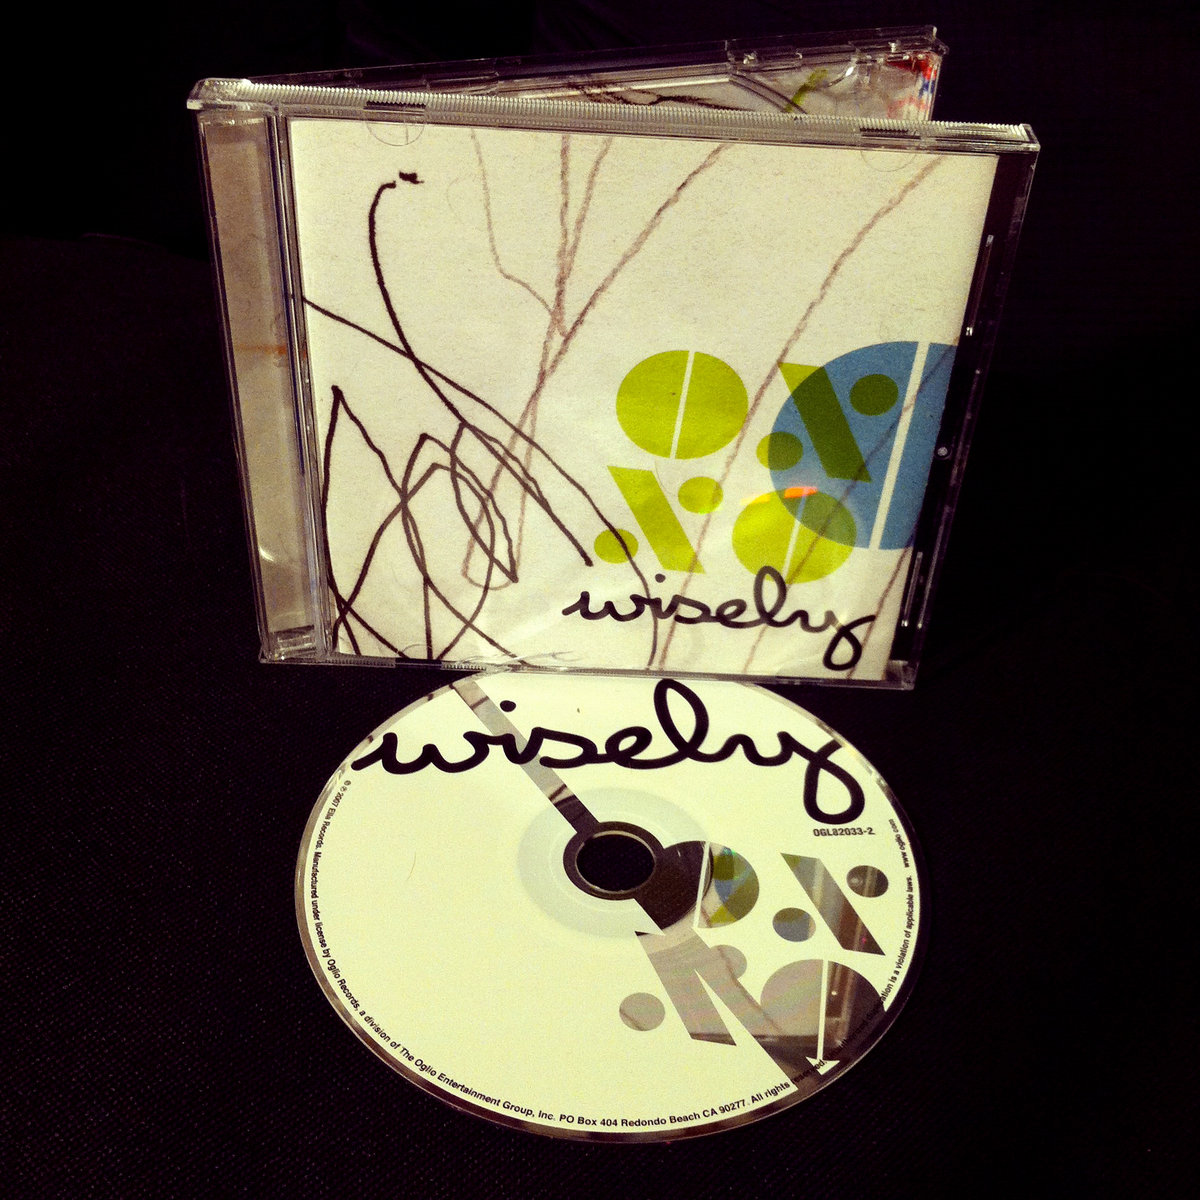 Wisely (Bonus Track Edition)   Willie Wisely